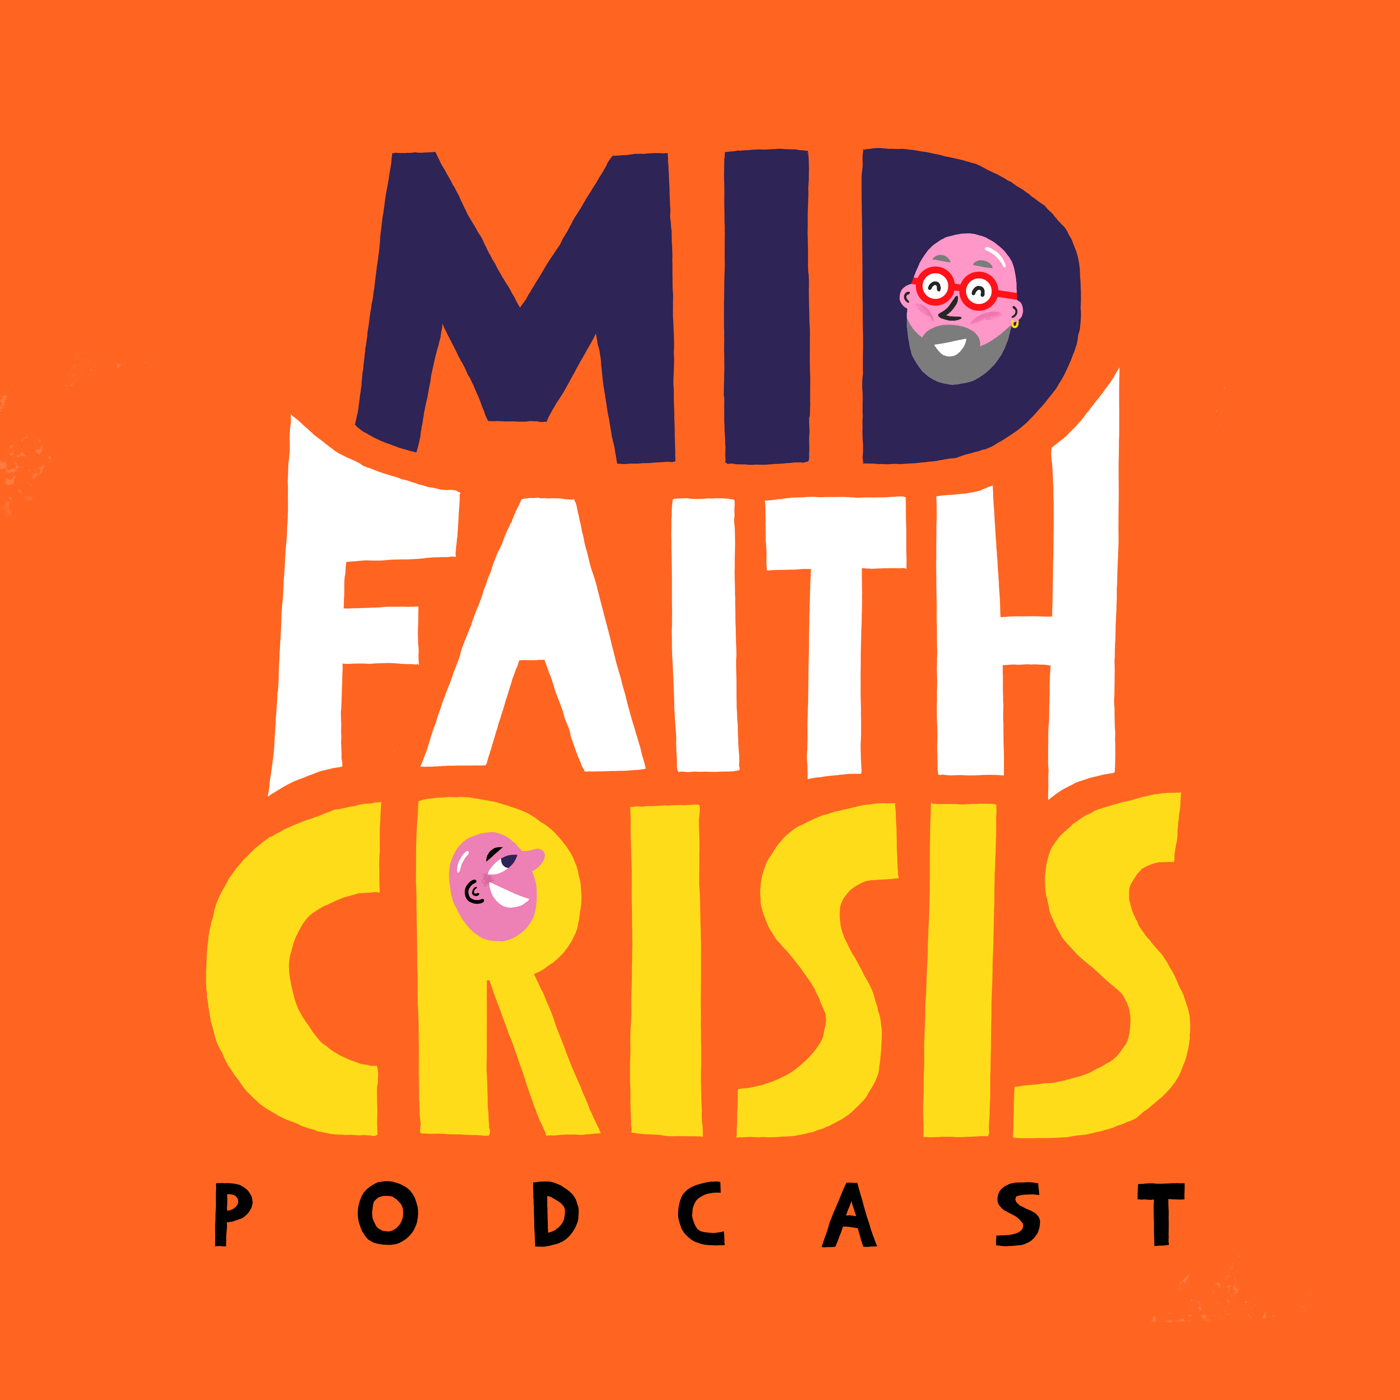 Apple Podcasts : Great Britain : Christianity Podcast Charts